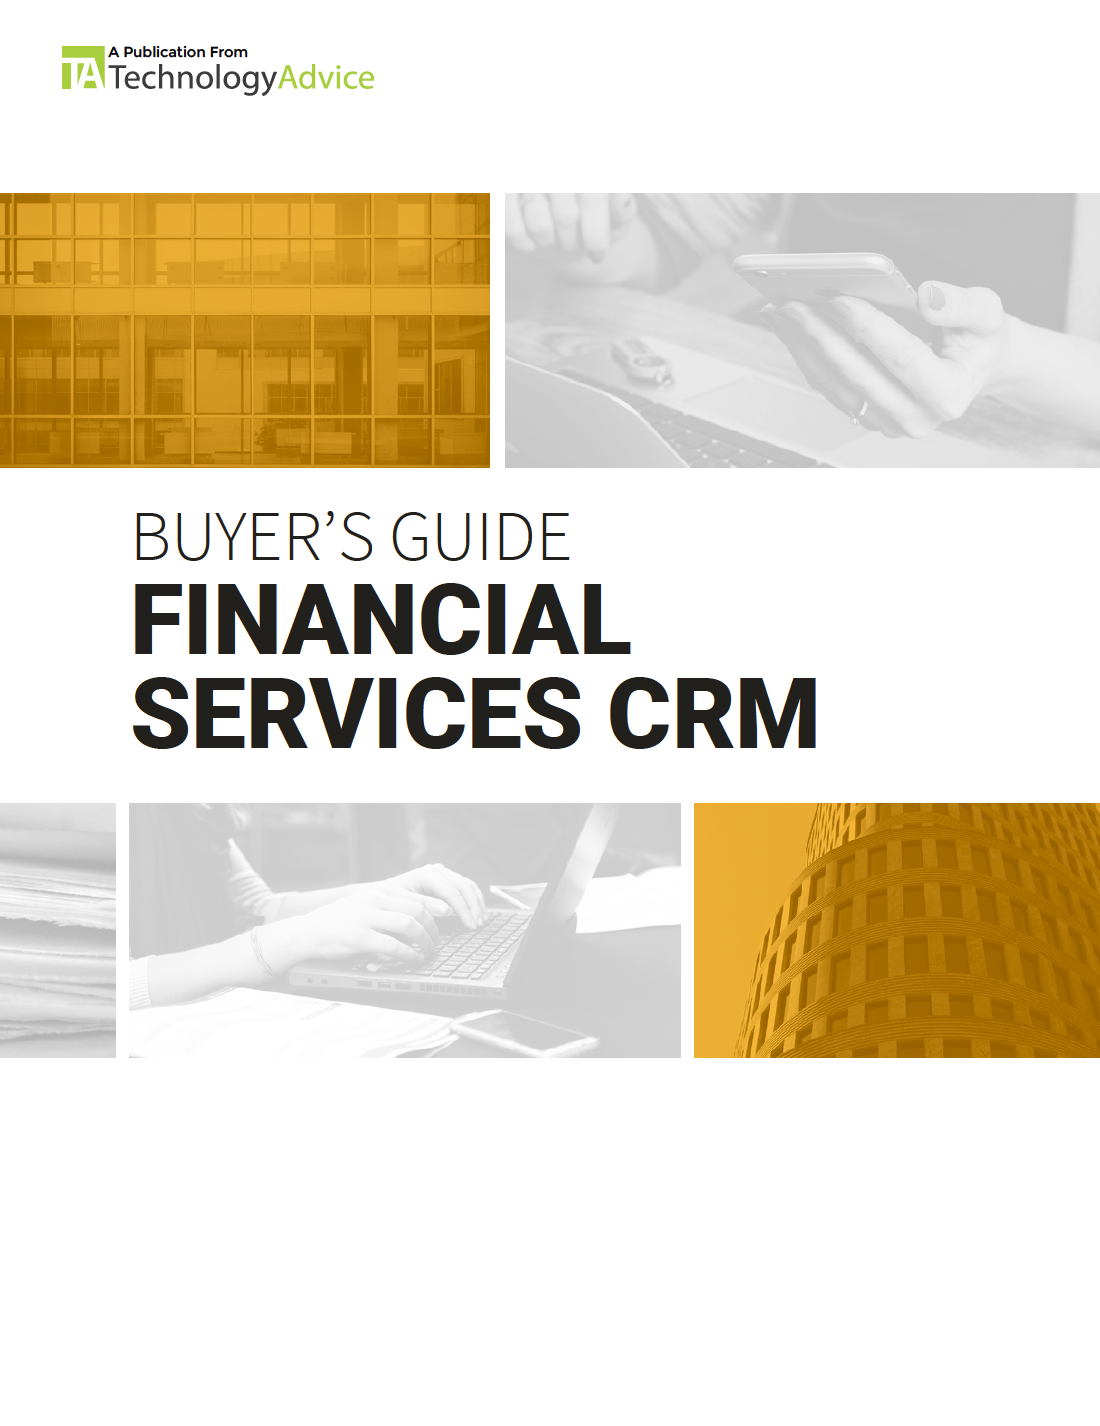 Buyer's Guide to Financial Services CRM